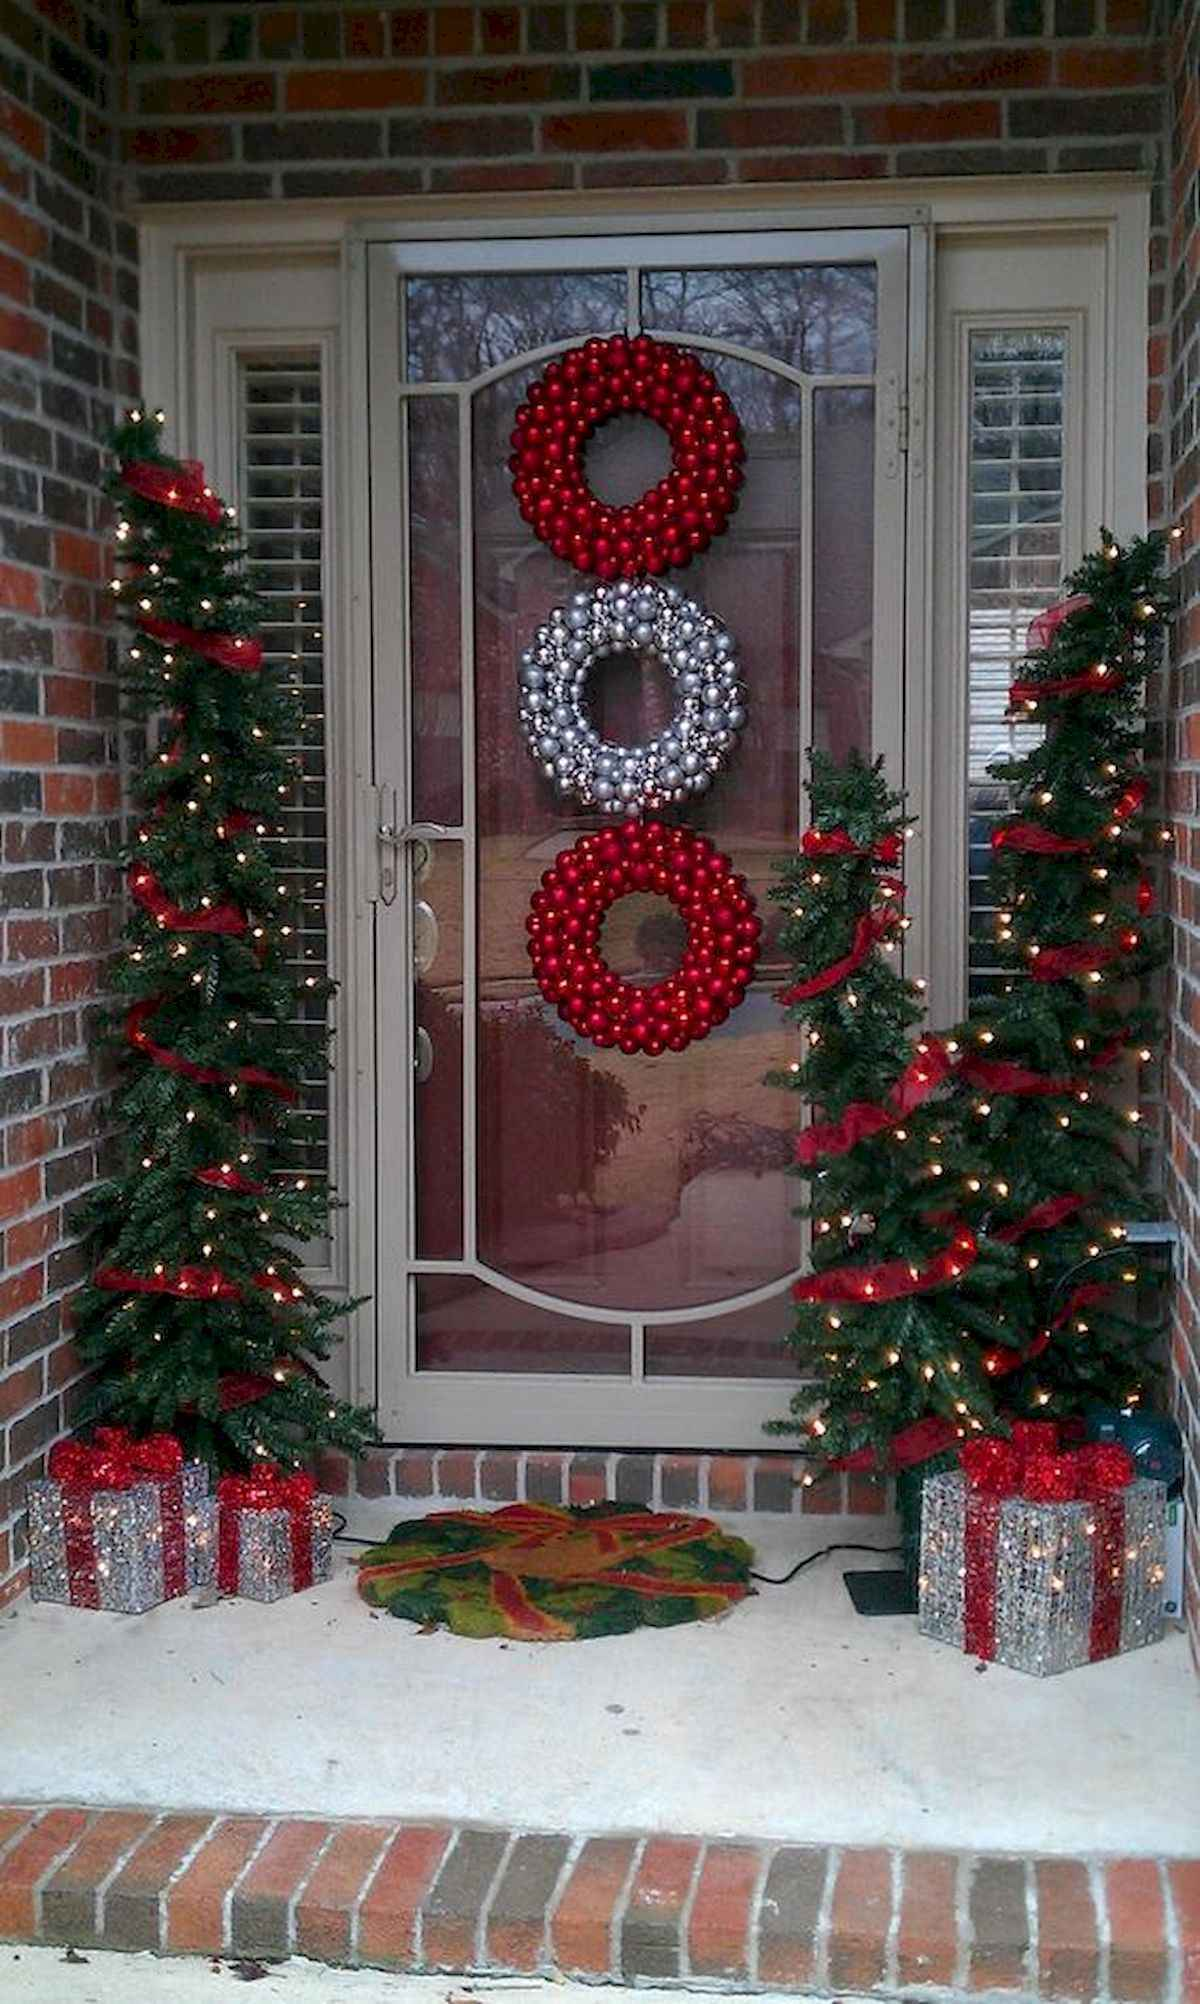 50 stunning front porch christmas lights decorations ideas (10)